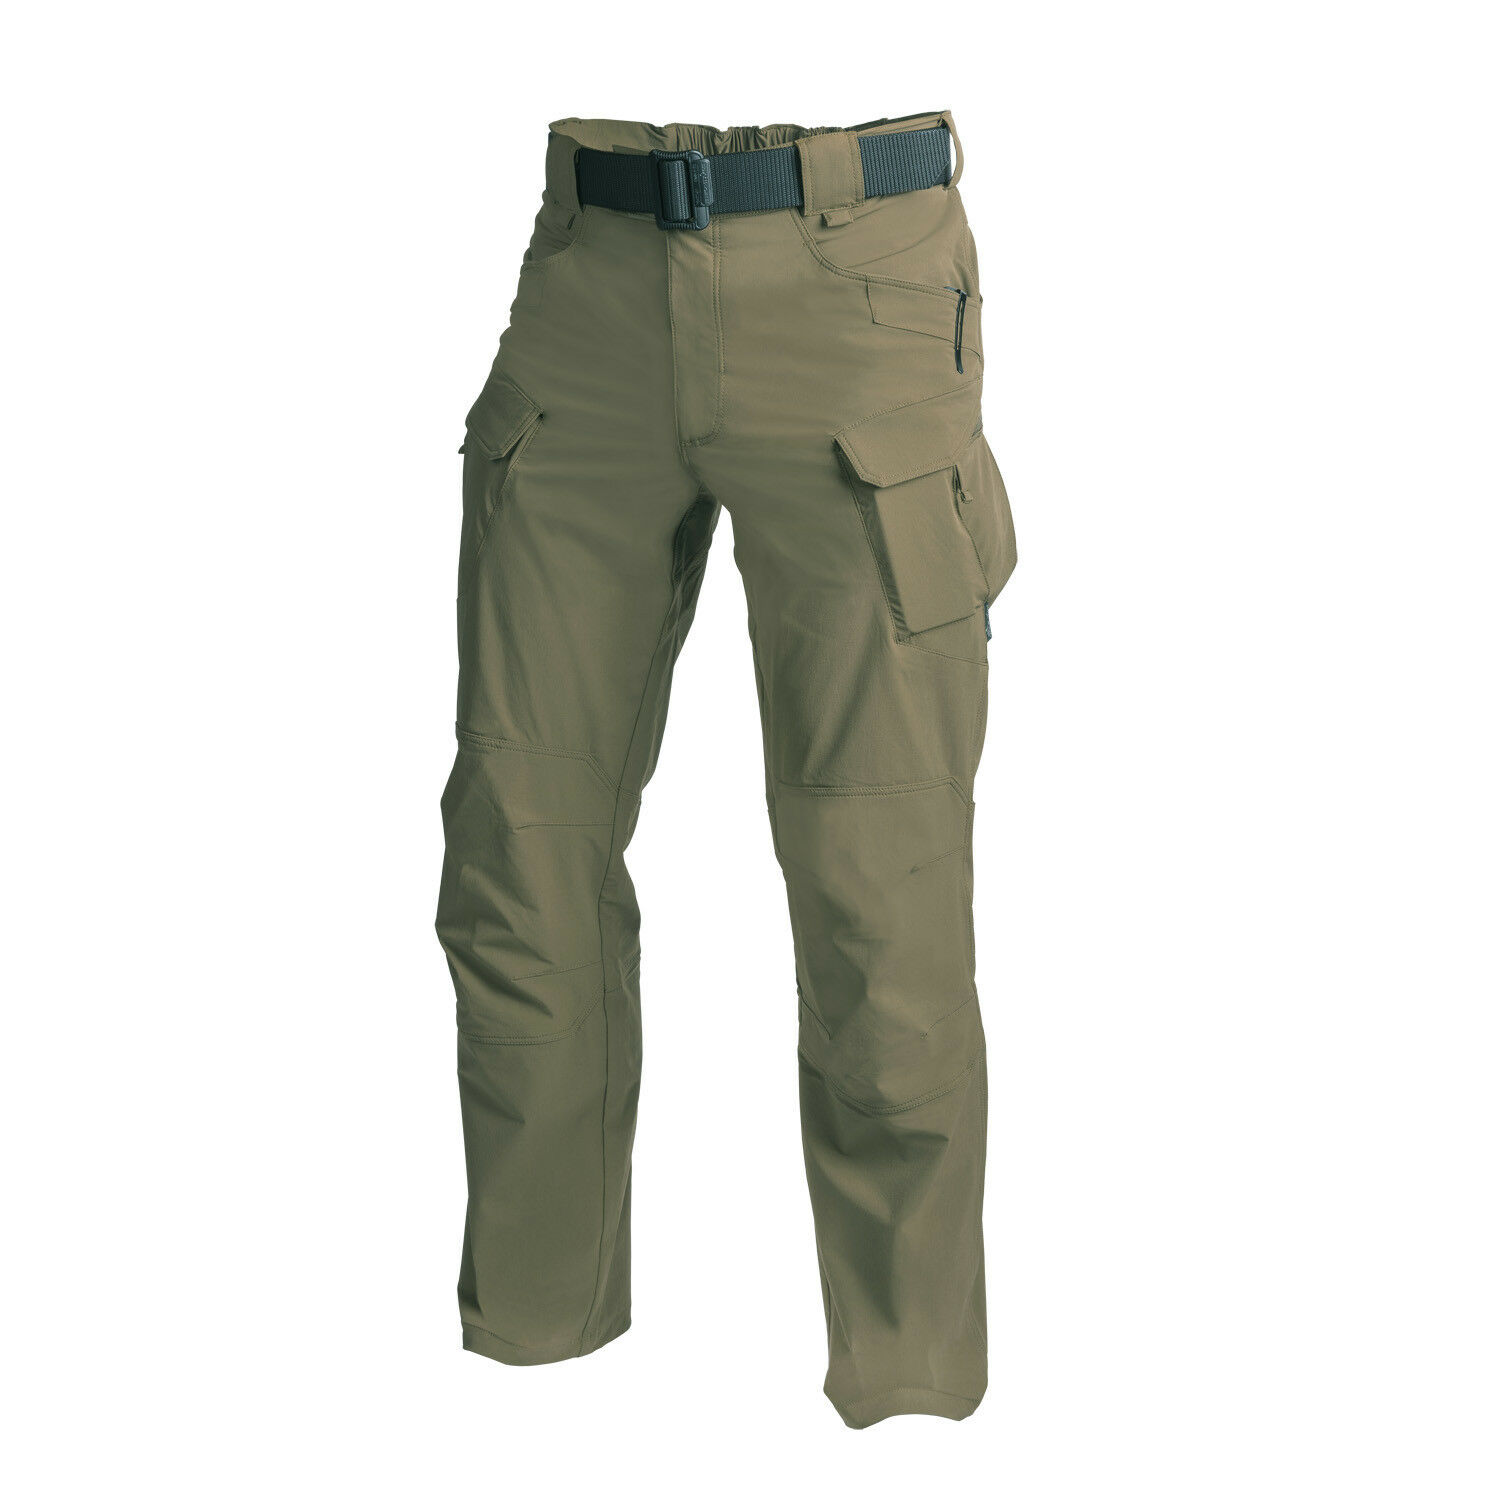 Helikon Tex Otp Tactical Outdoor Trekking Pants Trousers Adaptive Green